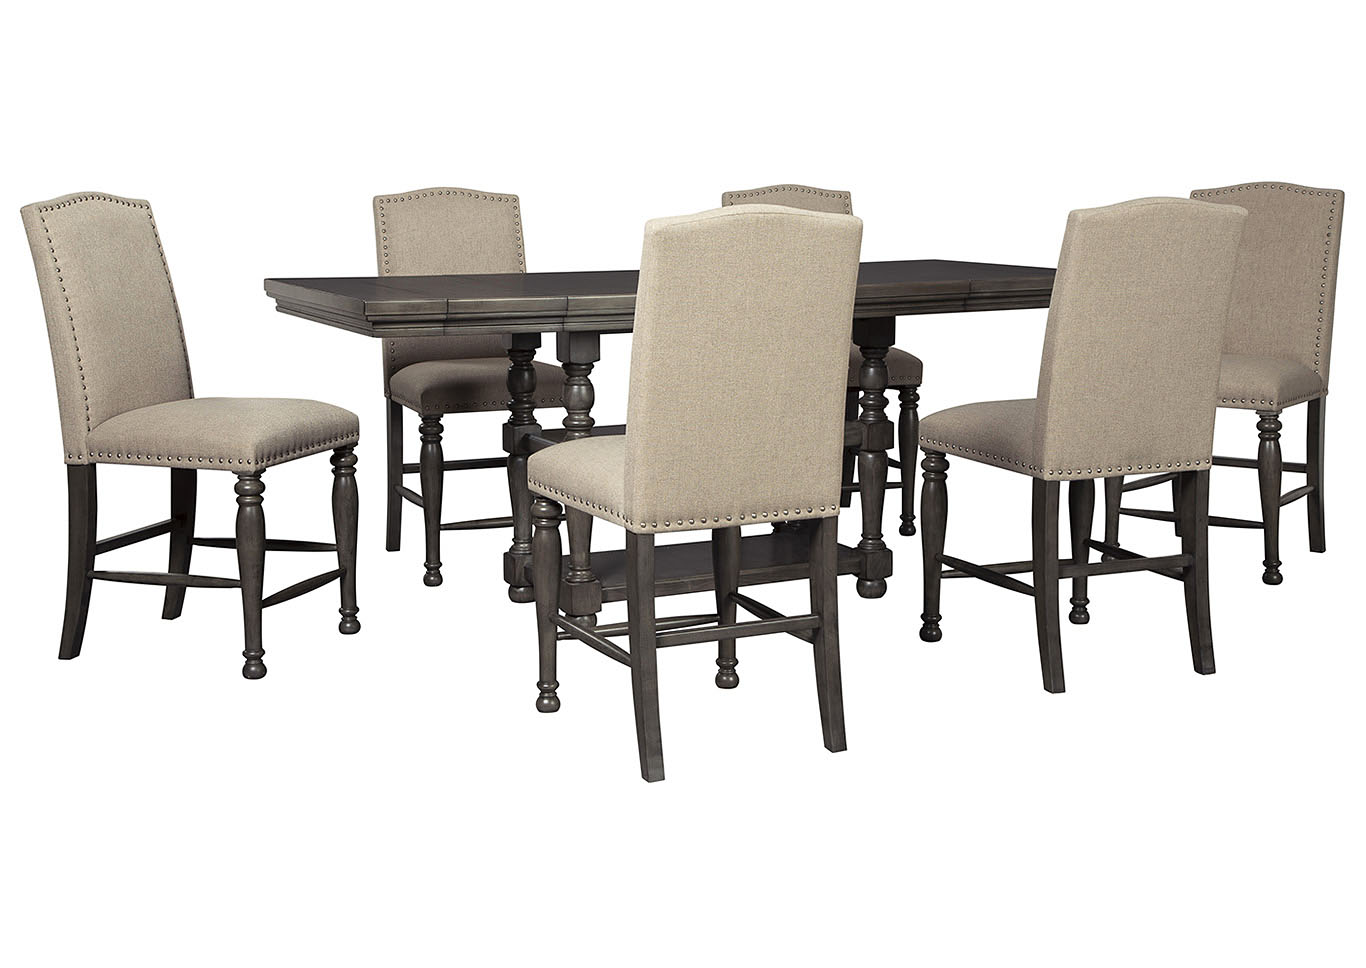 Audberry Dining Set w/6 Bar Stools,Signature Design By Ashley